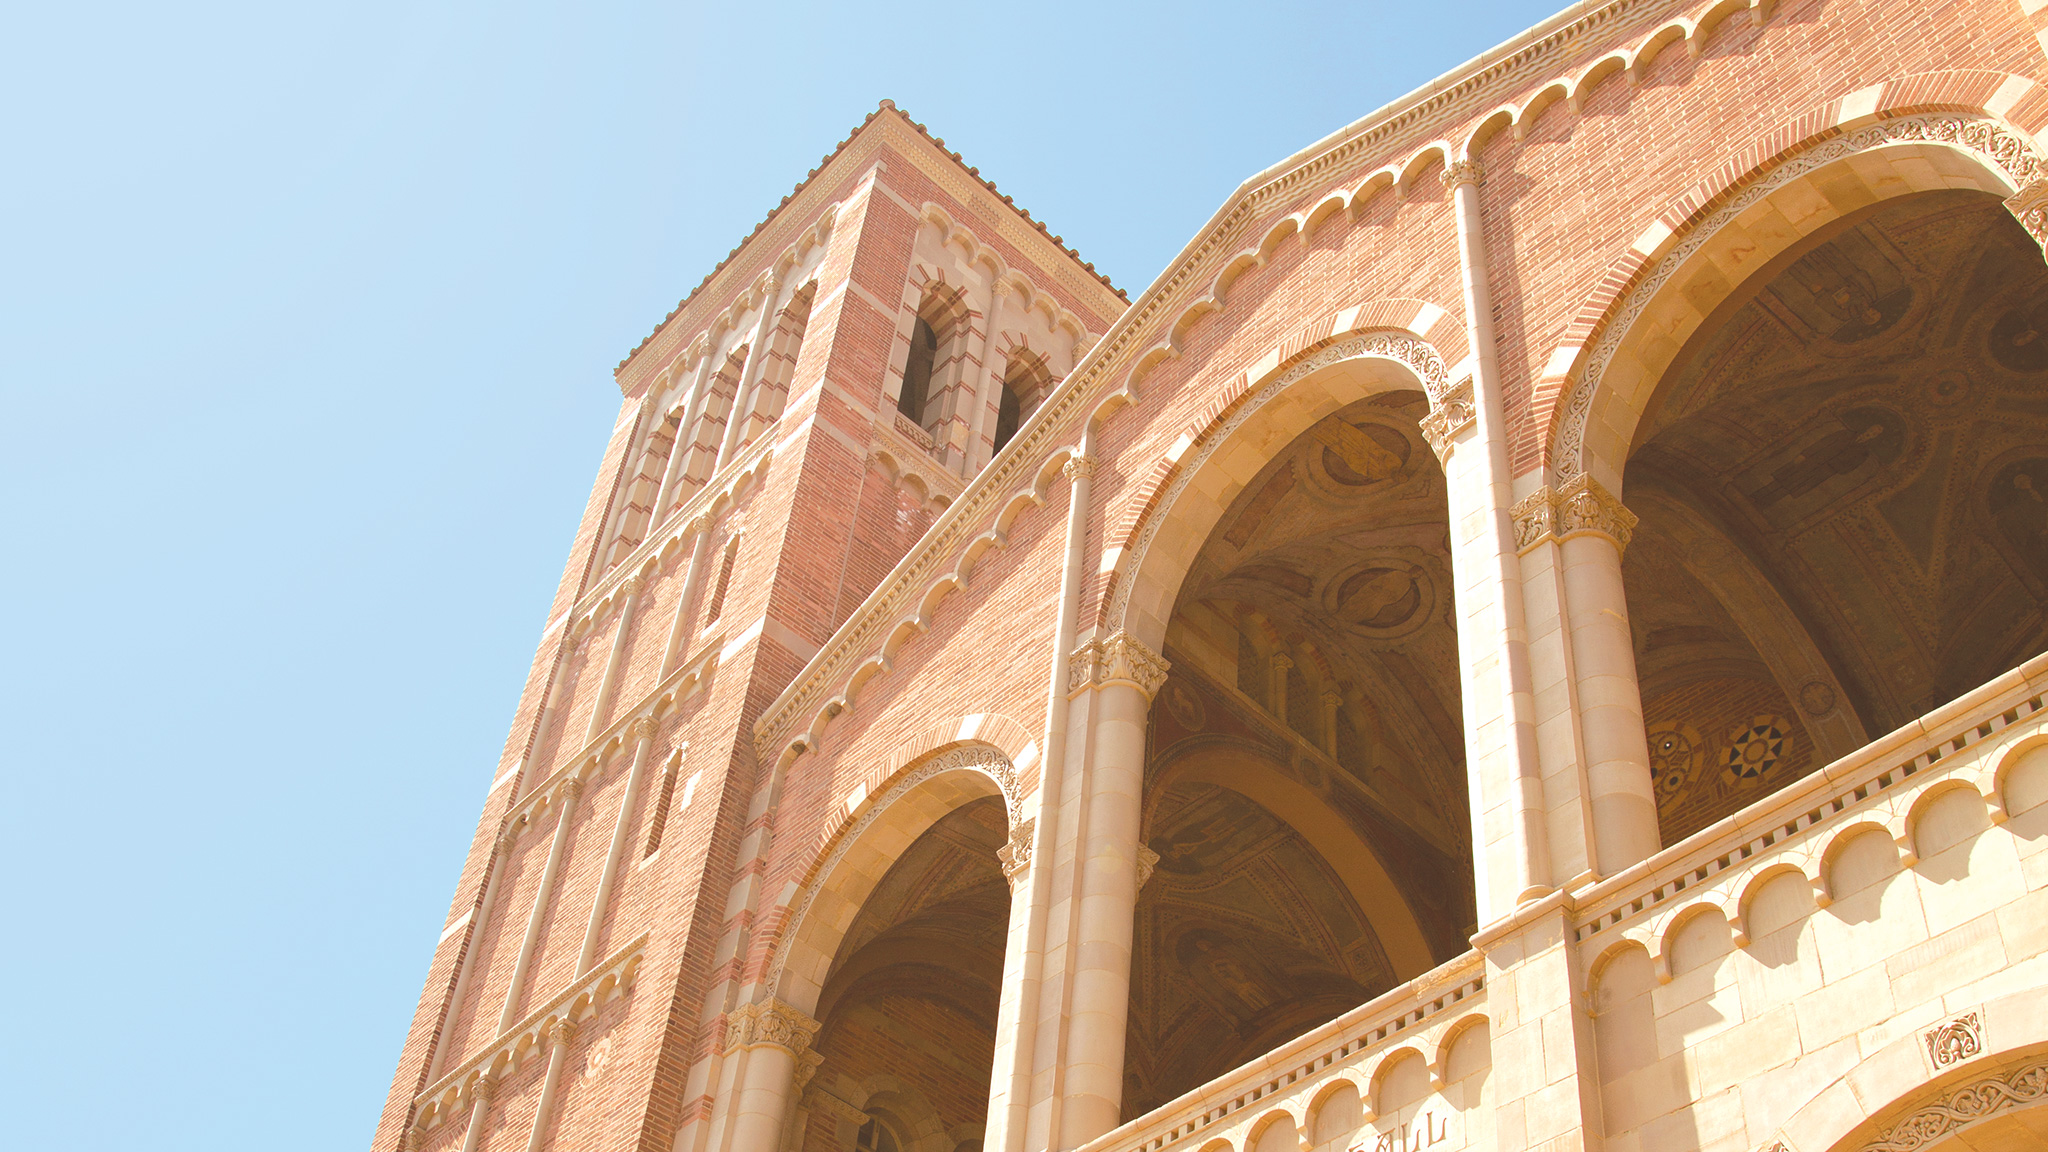 Royce Hall, one of UCLA's four original buildings, basks in the sunlight.